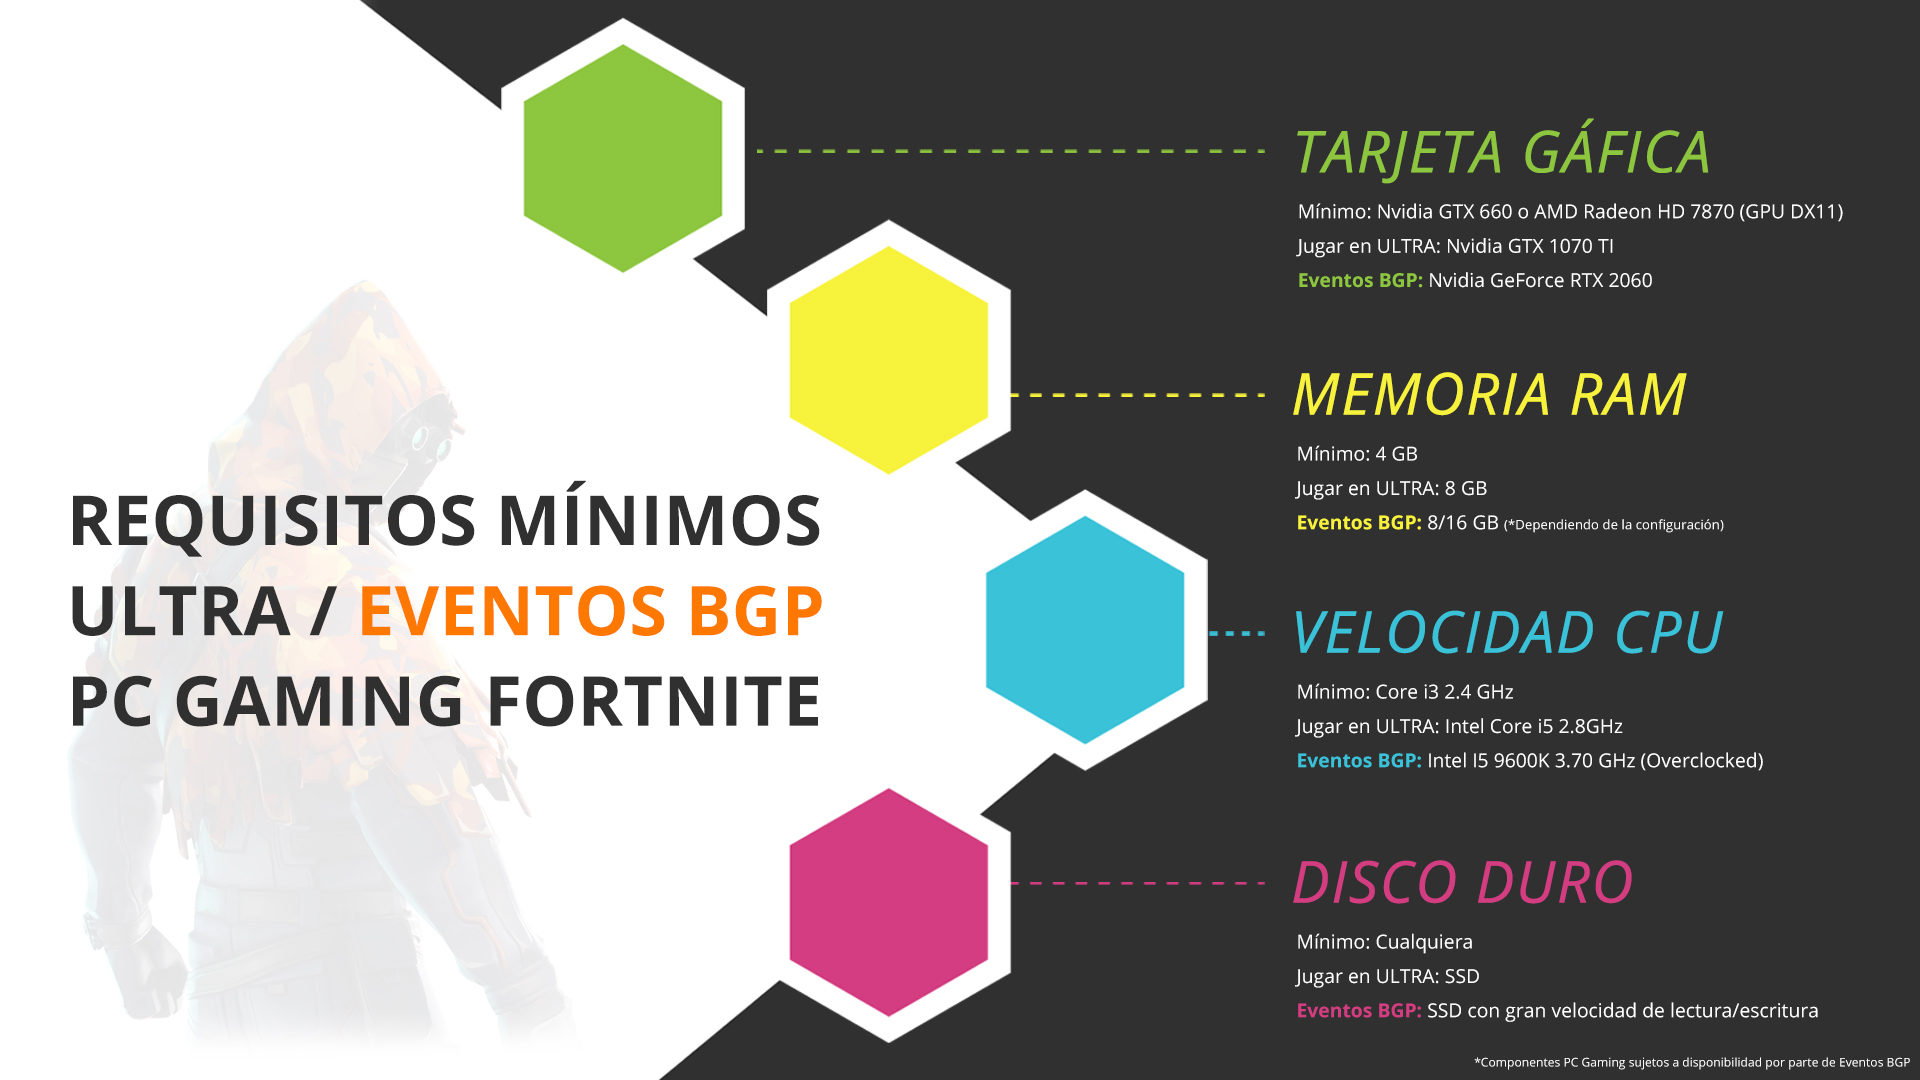 Requisitos mínimos PC Gaming para Fortnite y Ultra